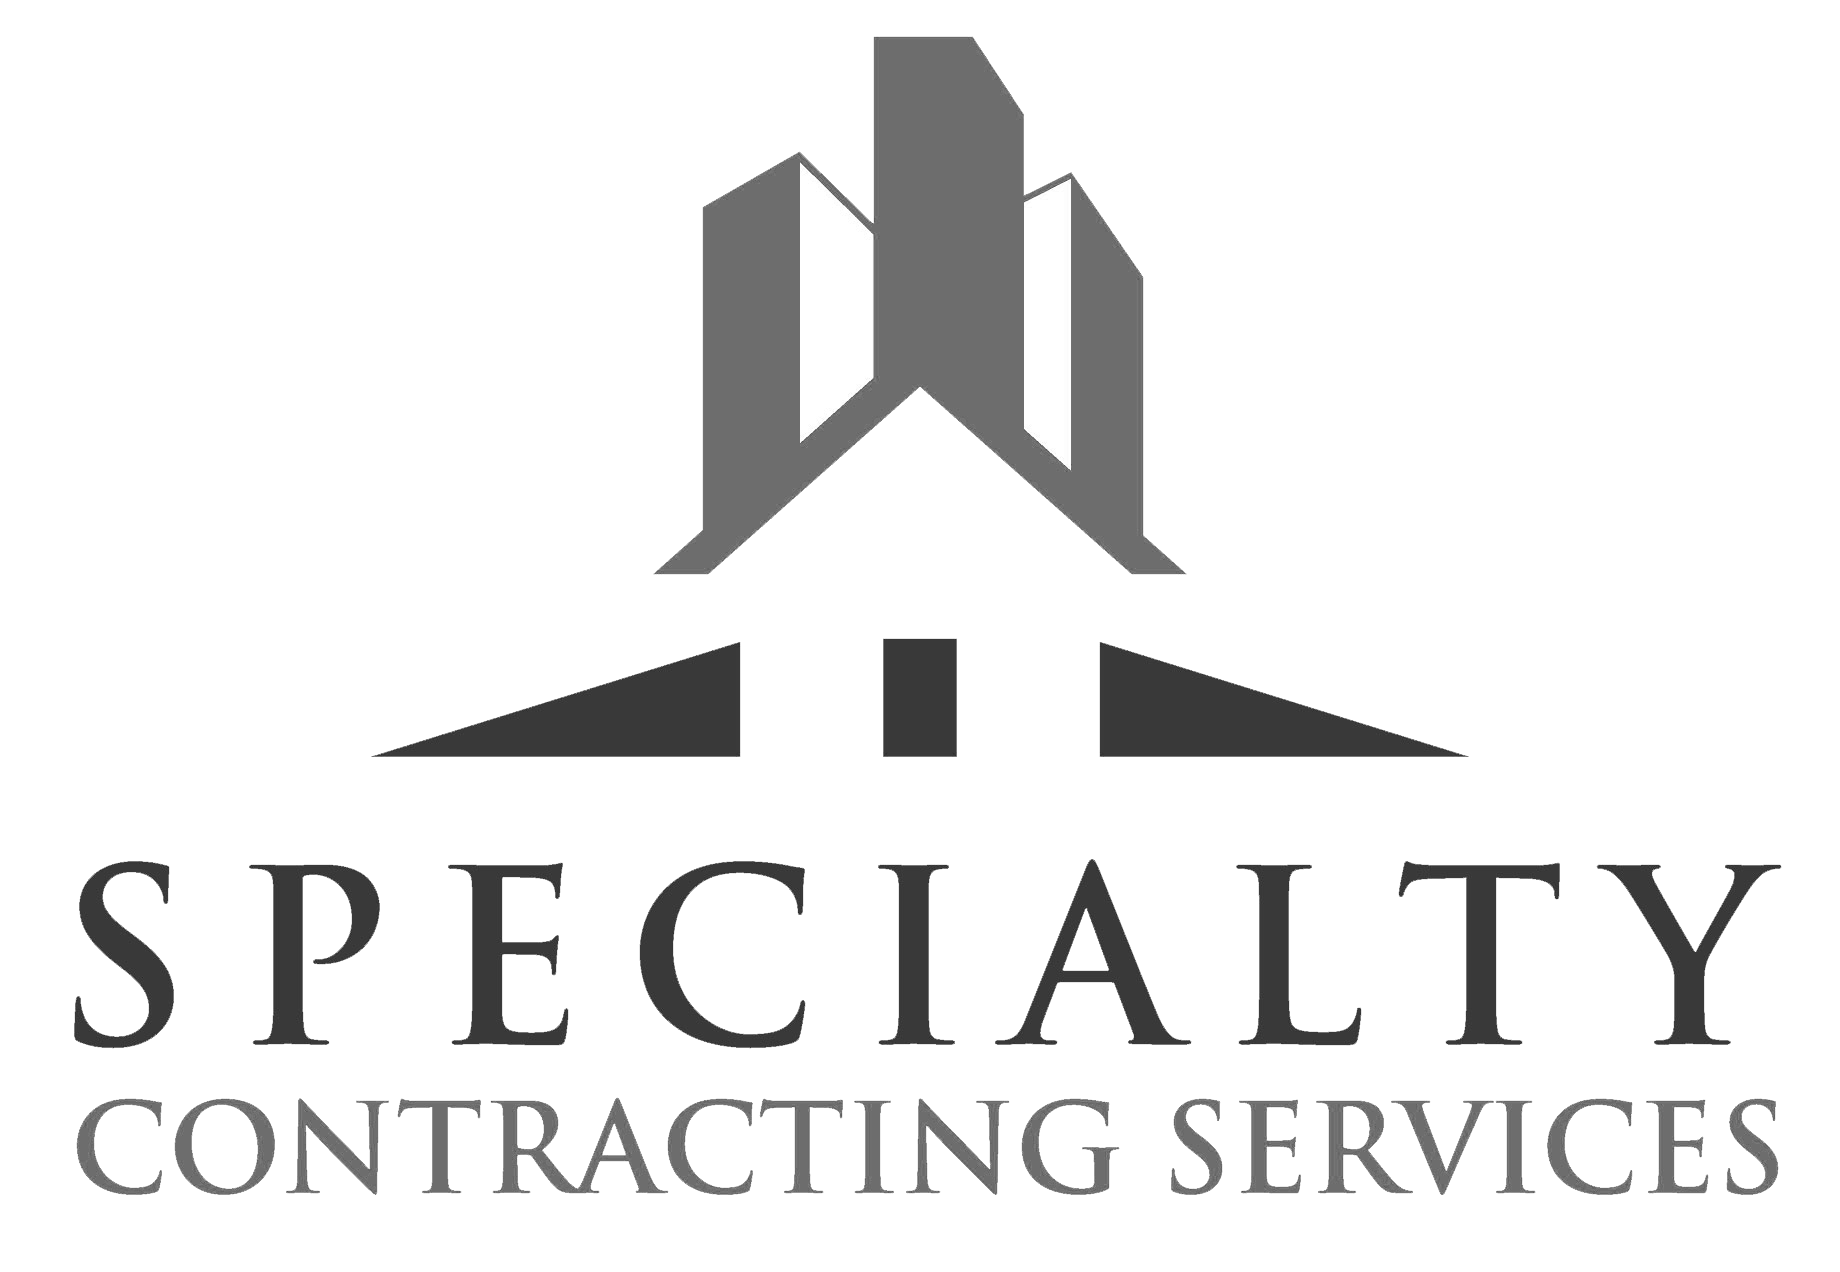 Specialty Contracting Services